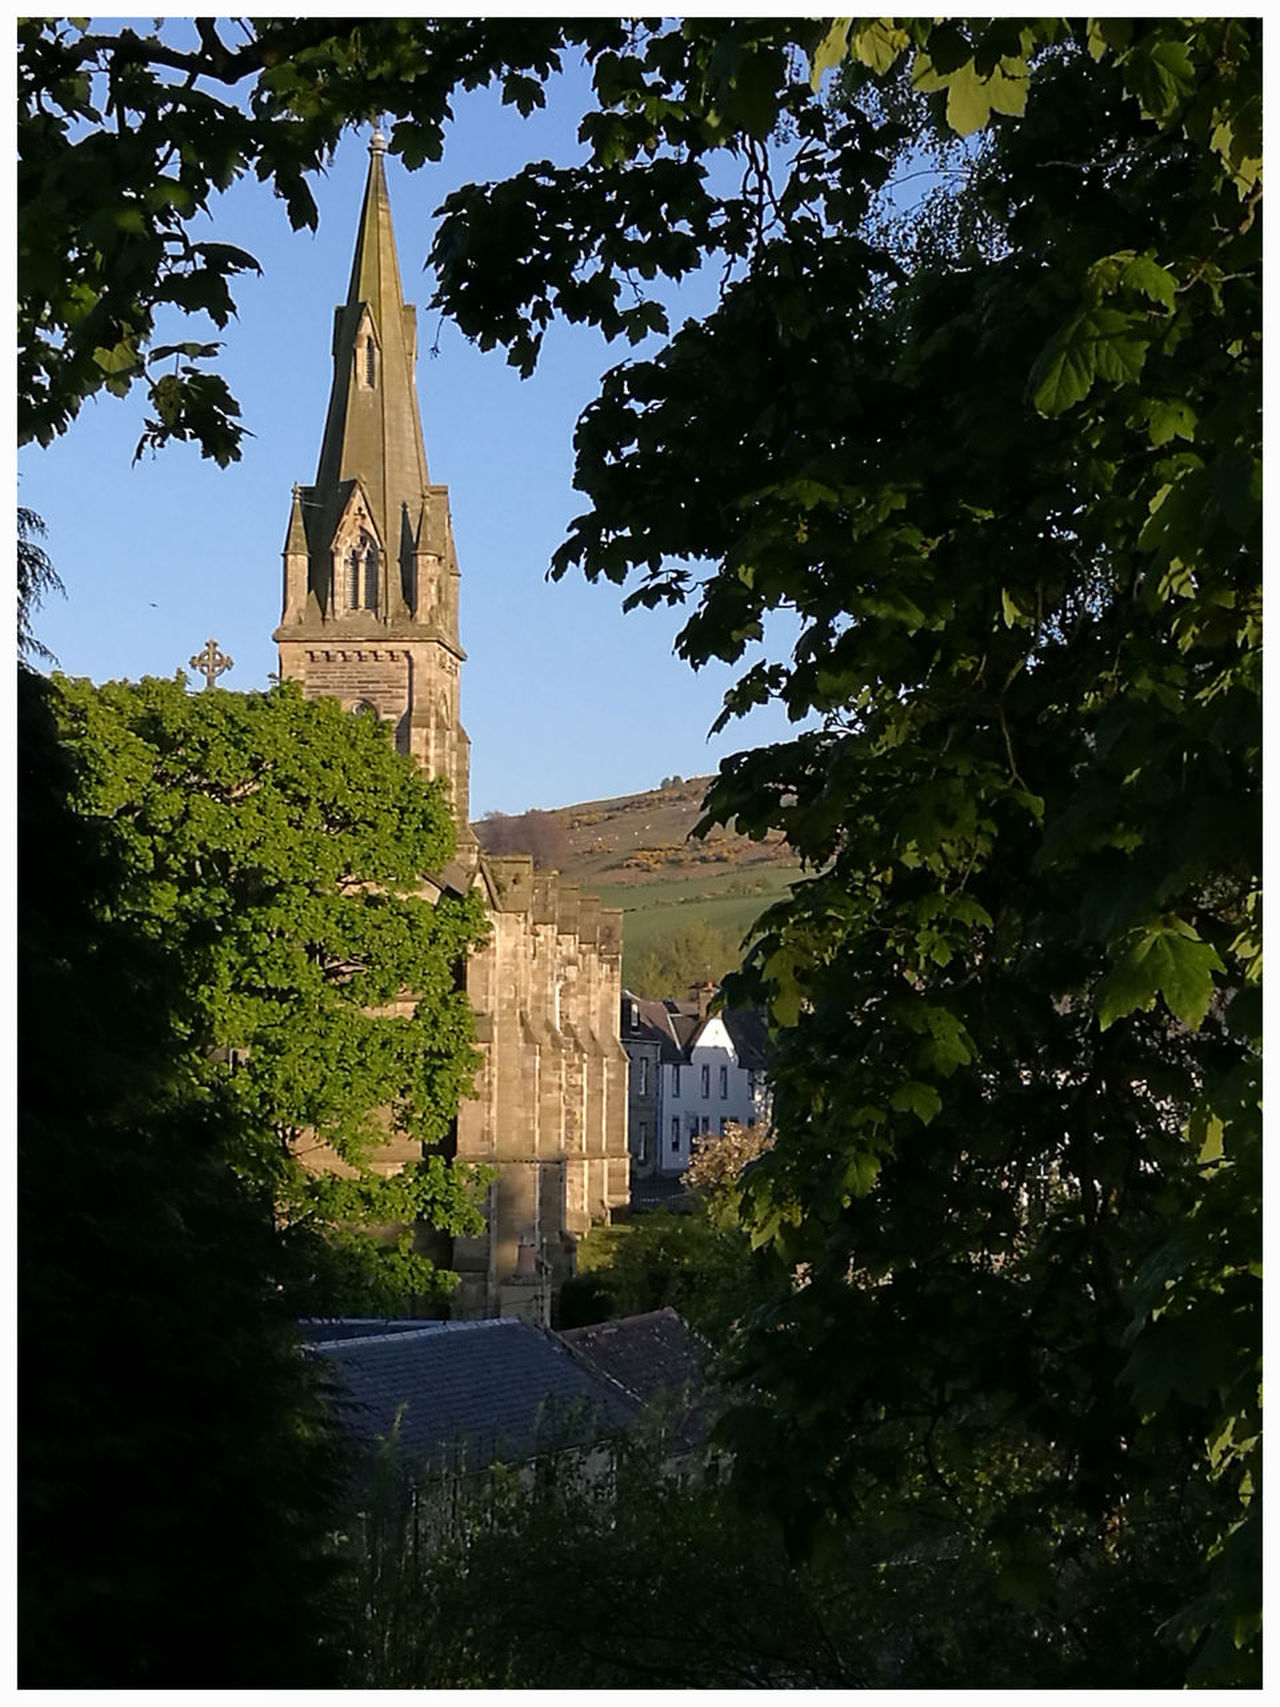 spire church of Scotland Falkland Fife Beauty In Nature Outdoors Green Color Leaf Trees And Bushes Street Photography Architecture Building Exterior